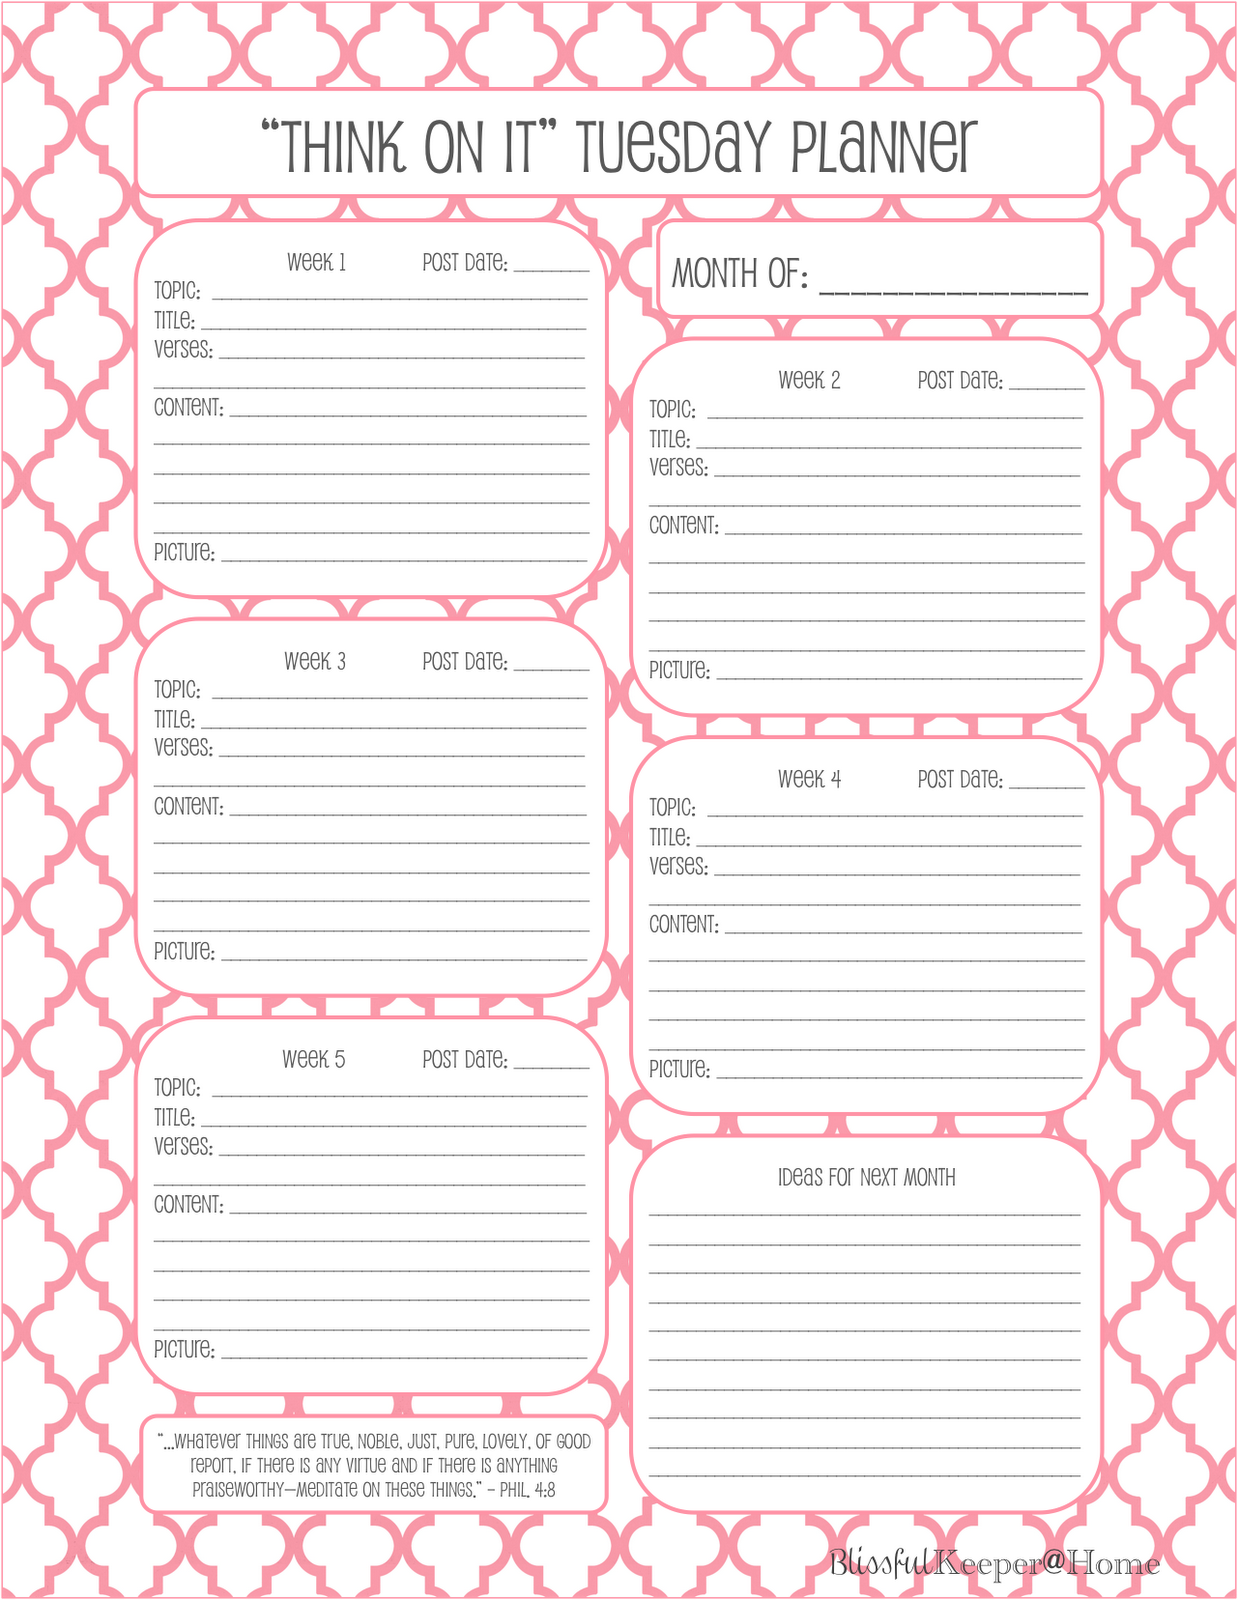 Blissful Keeper at Home: My Blog Planning Sheets